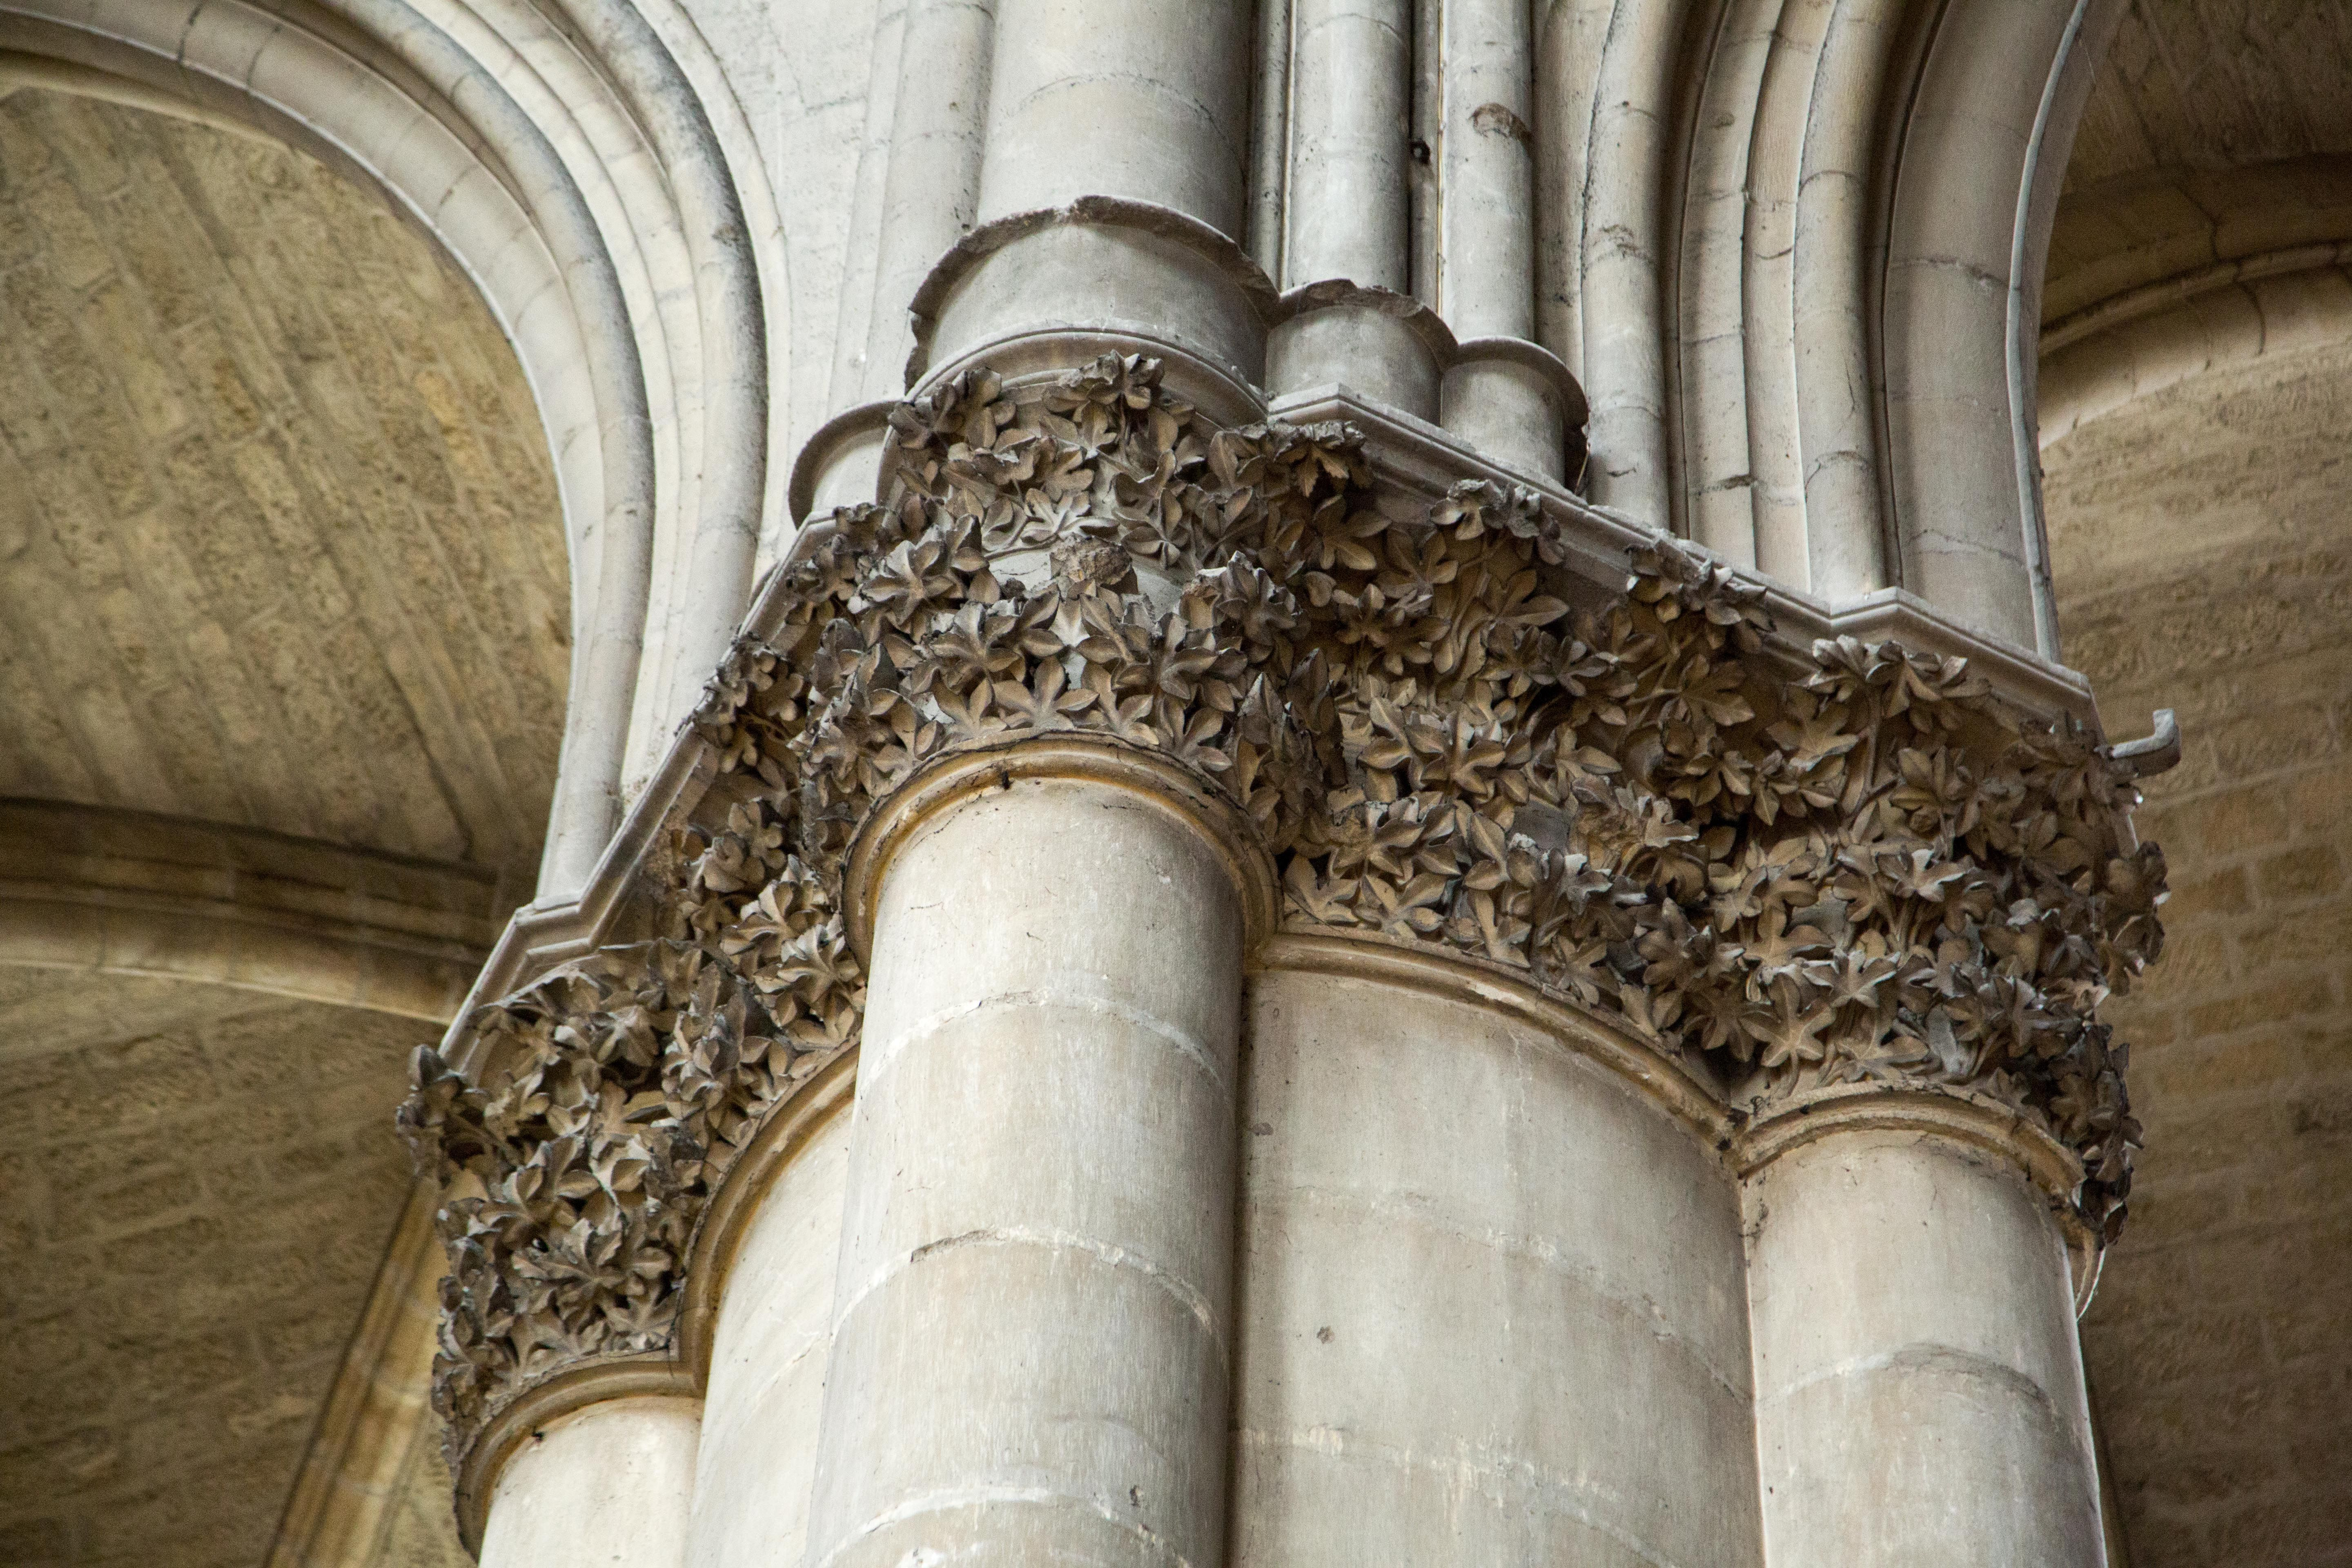 Reims Cathedral France Interior Images